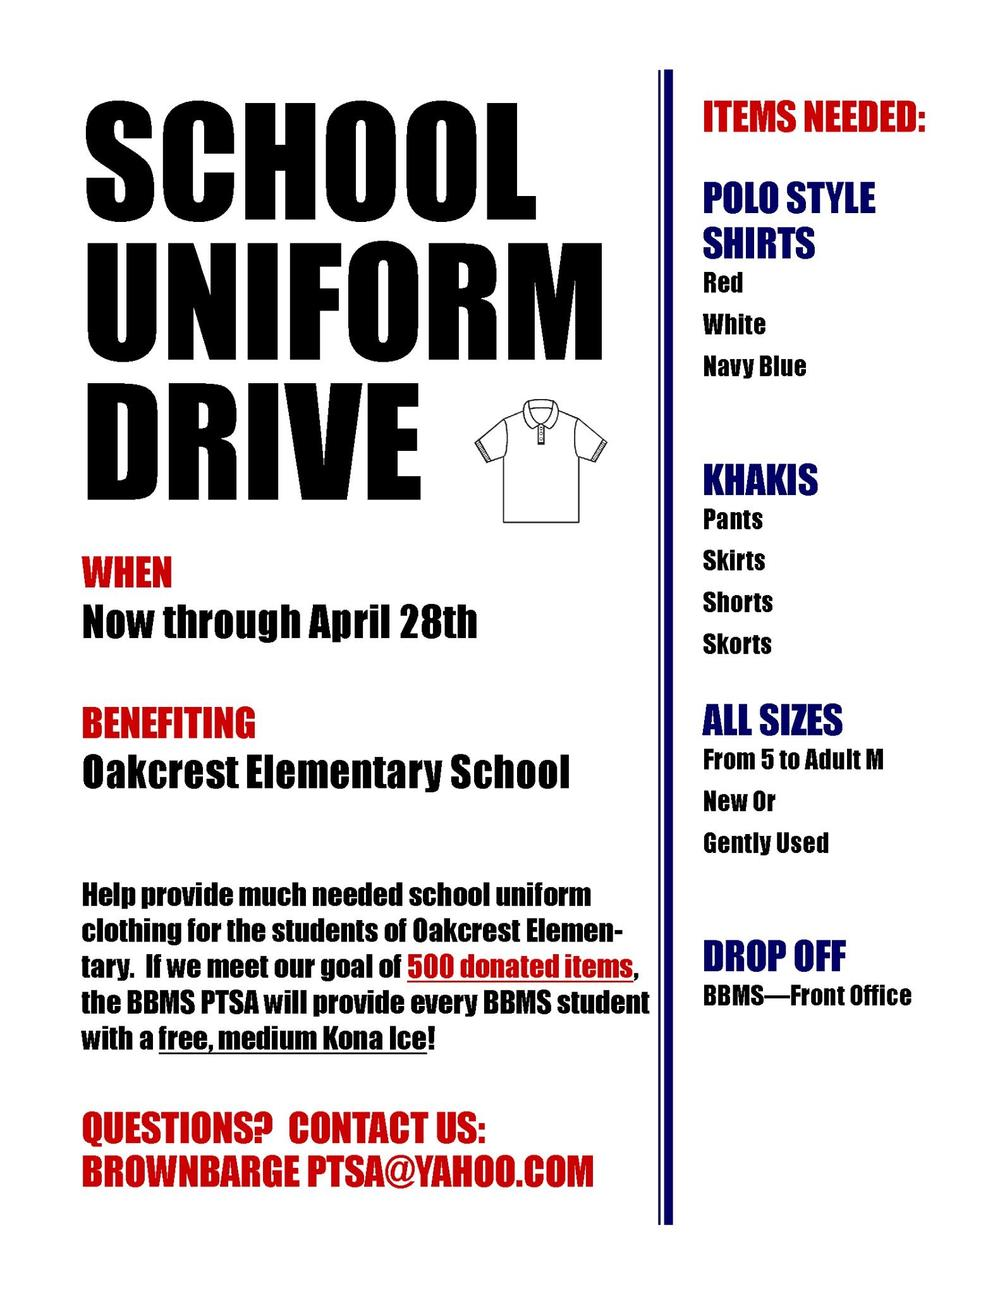 School Uniform Drive Flyer